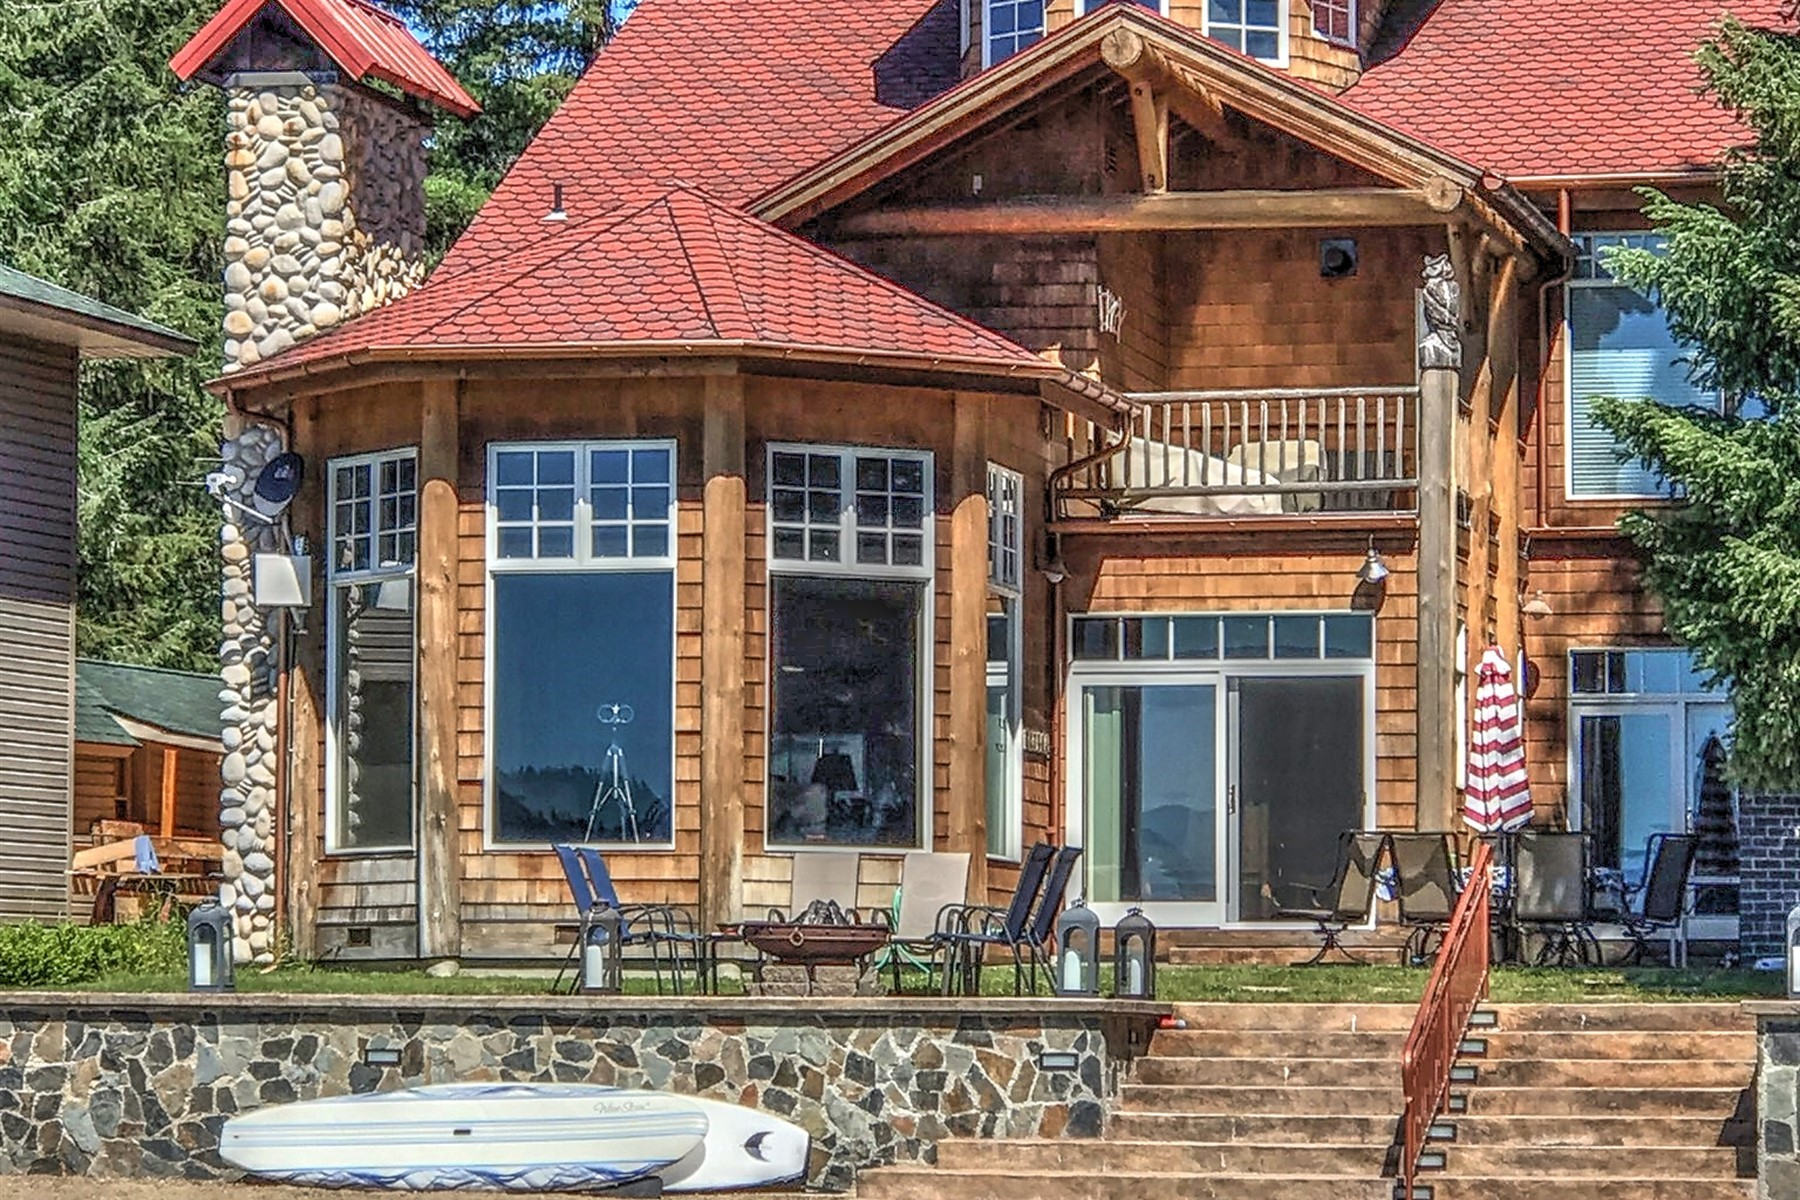 Single Family Home for Active at Prime Location 38 Easy Street Priest Lake, Idaho 83856 United States